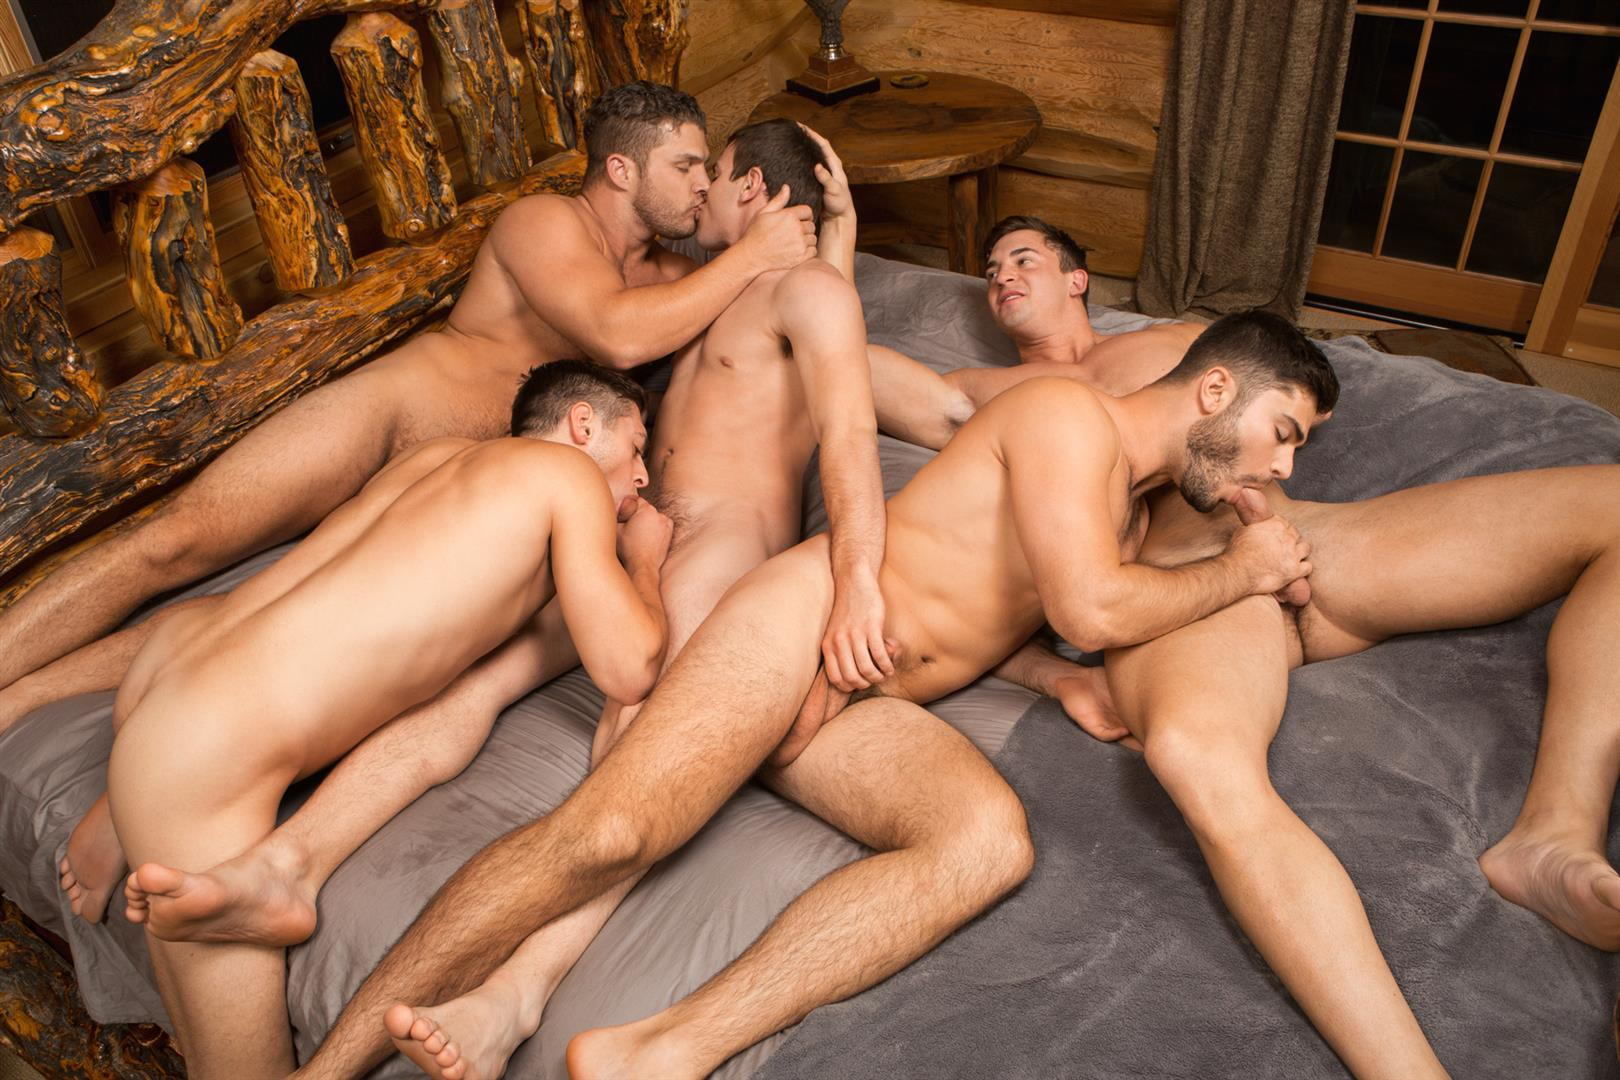 Sean-Cody-Winter-Getaway-Day-1-Big-Dick-Hunks-Fucking-Bareback-Amateur-Gay-Porn-09 Sean Cody Takes The Boys On A 8-Day Bareback Winter Getaway